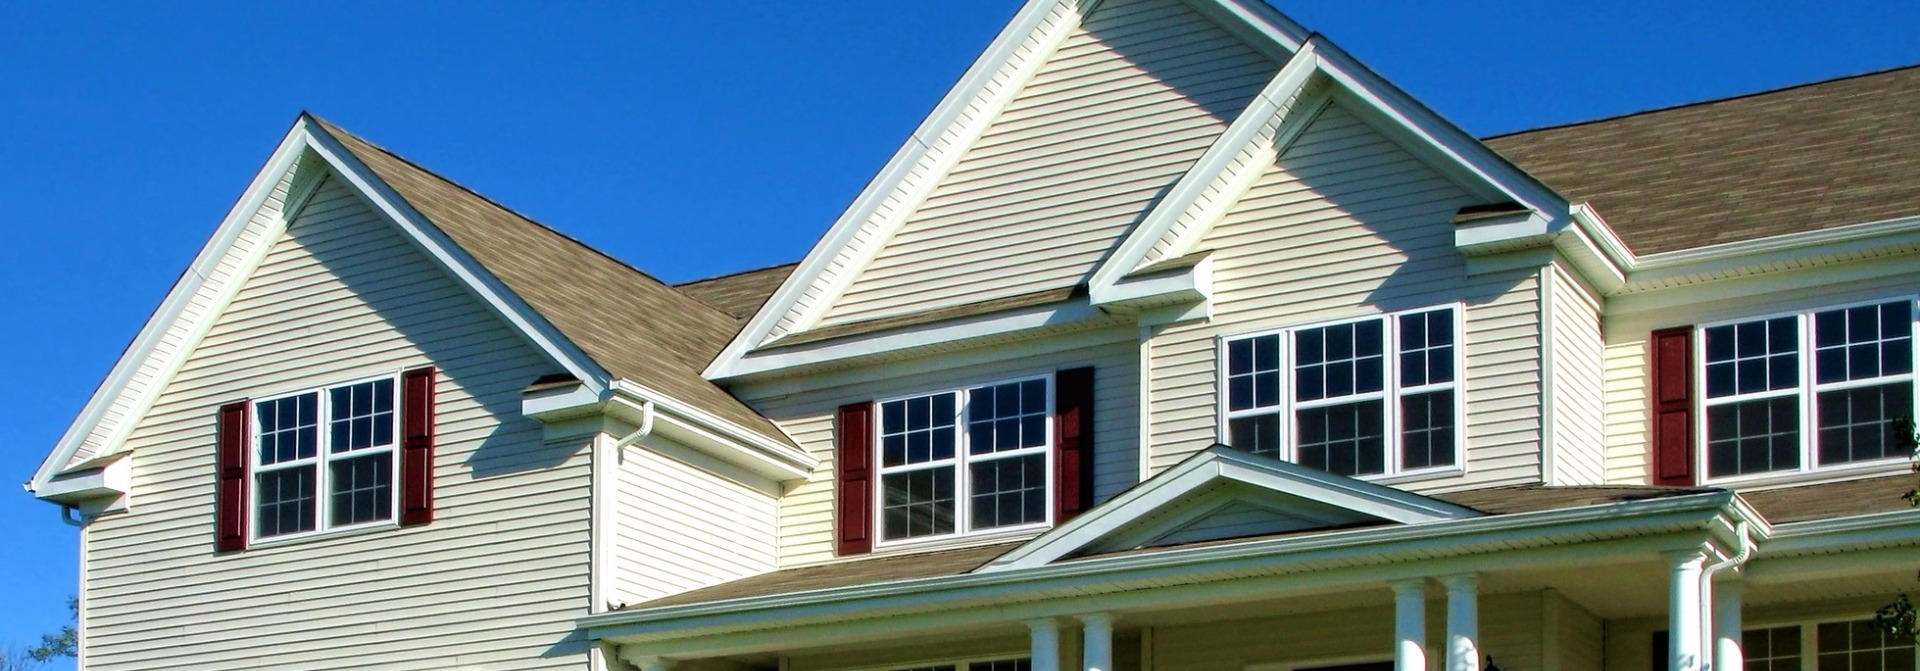 ZERO DOWN PAYMENT HOMES IN THE GREATER MONTGOMERY AREA